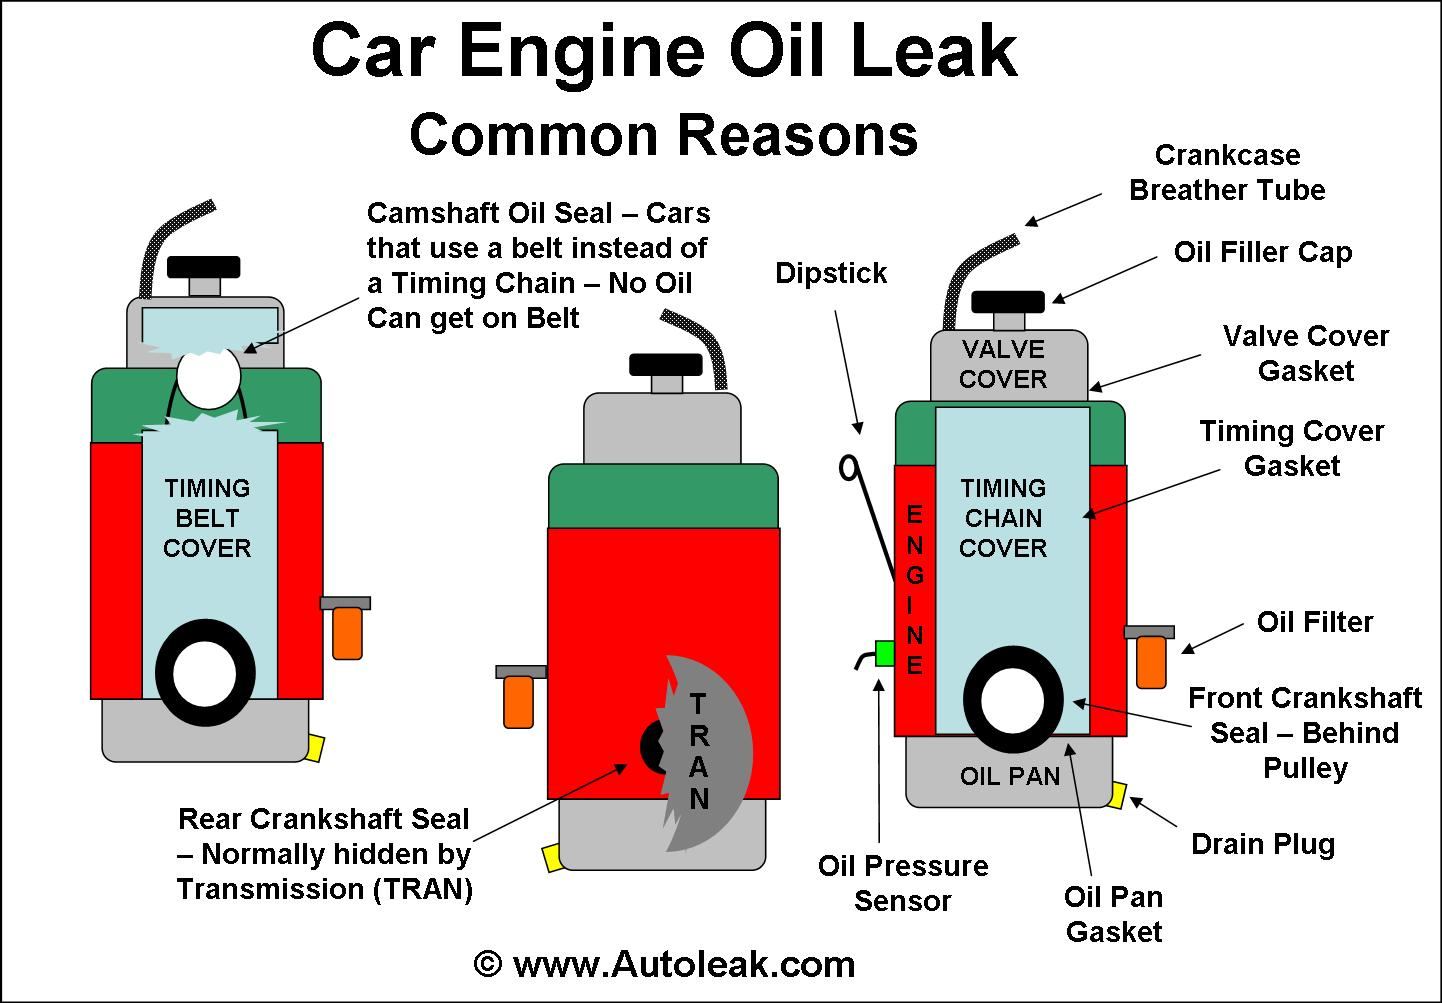 Common Oil Leaks, Engine Oil Leak, Leaking Oil